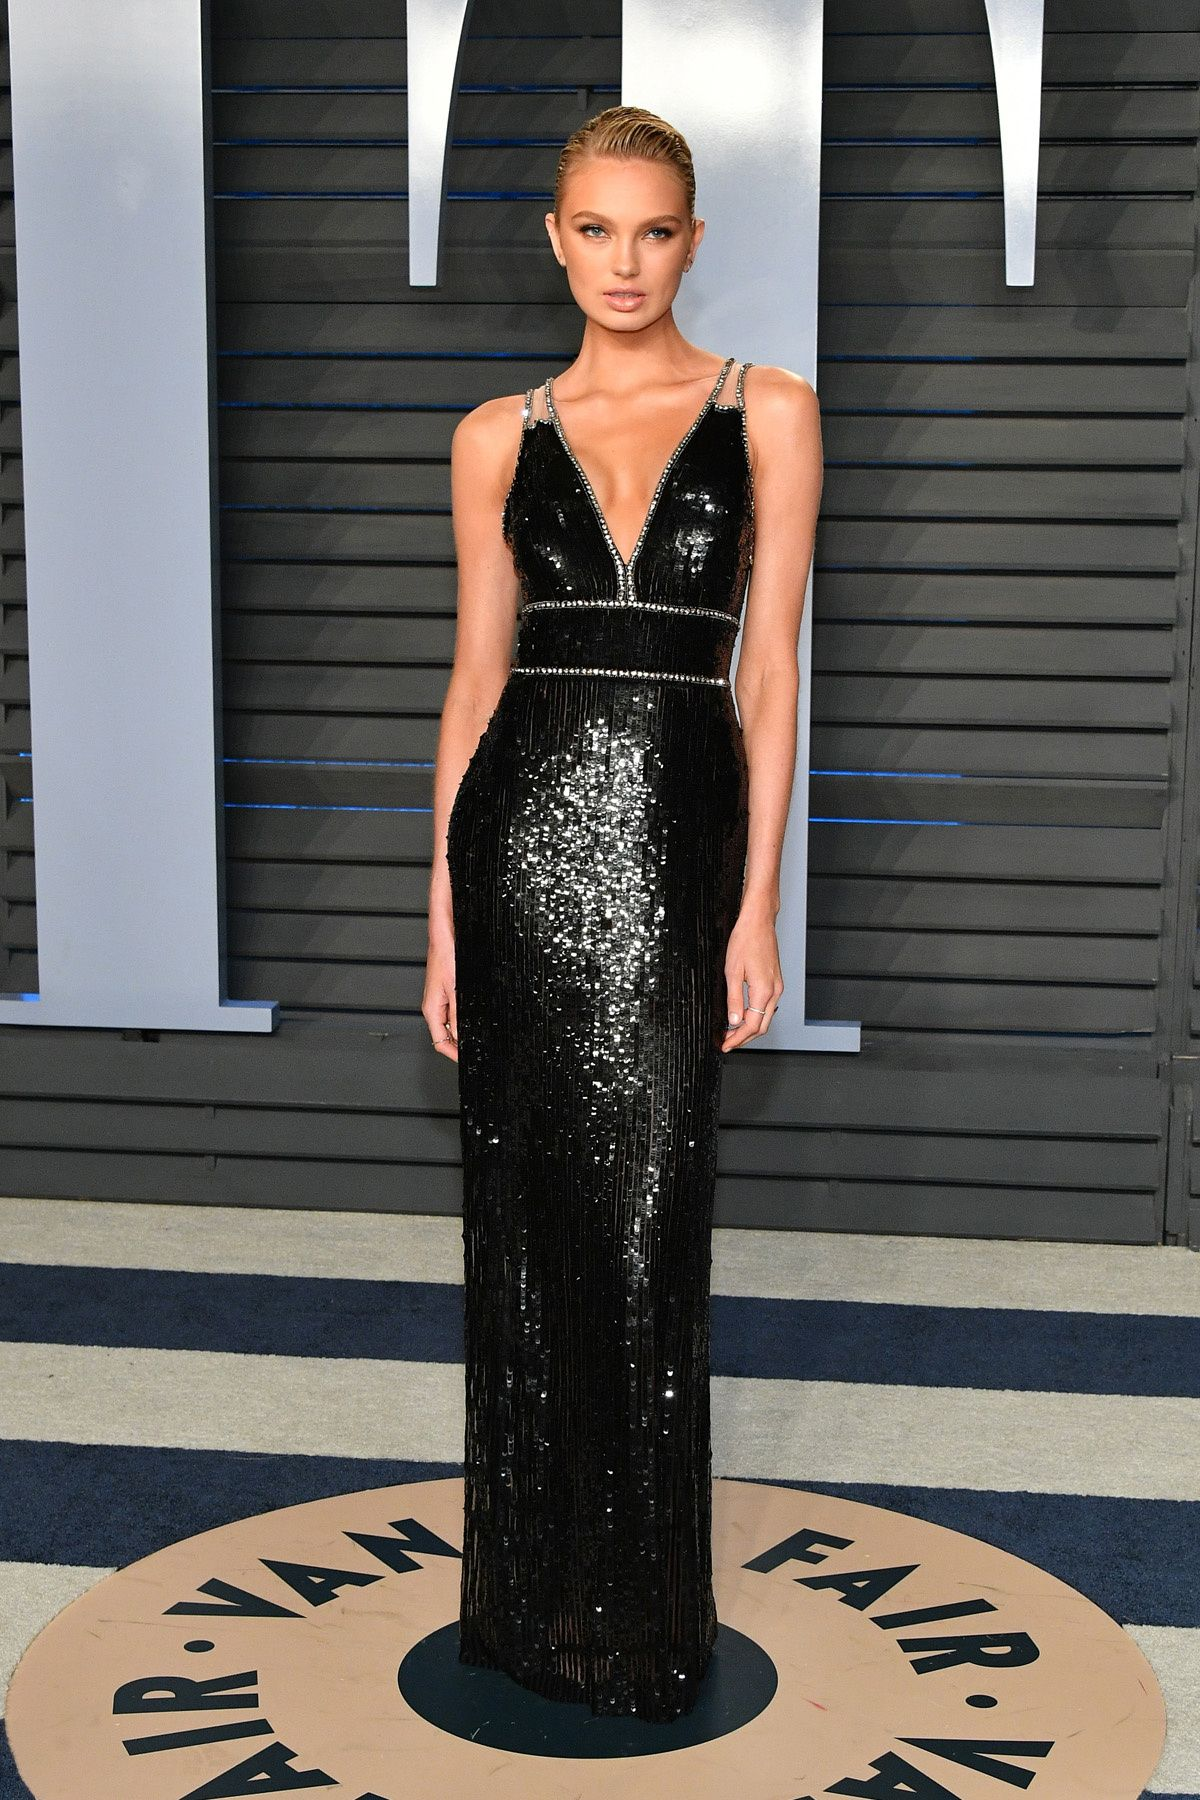 Romee Strijd attends the 2018 Vanity Fair Oscar Party in Bervely Hills. bdf3a5cfe5d